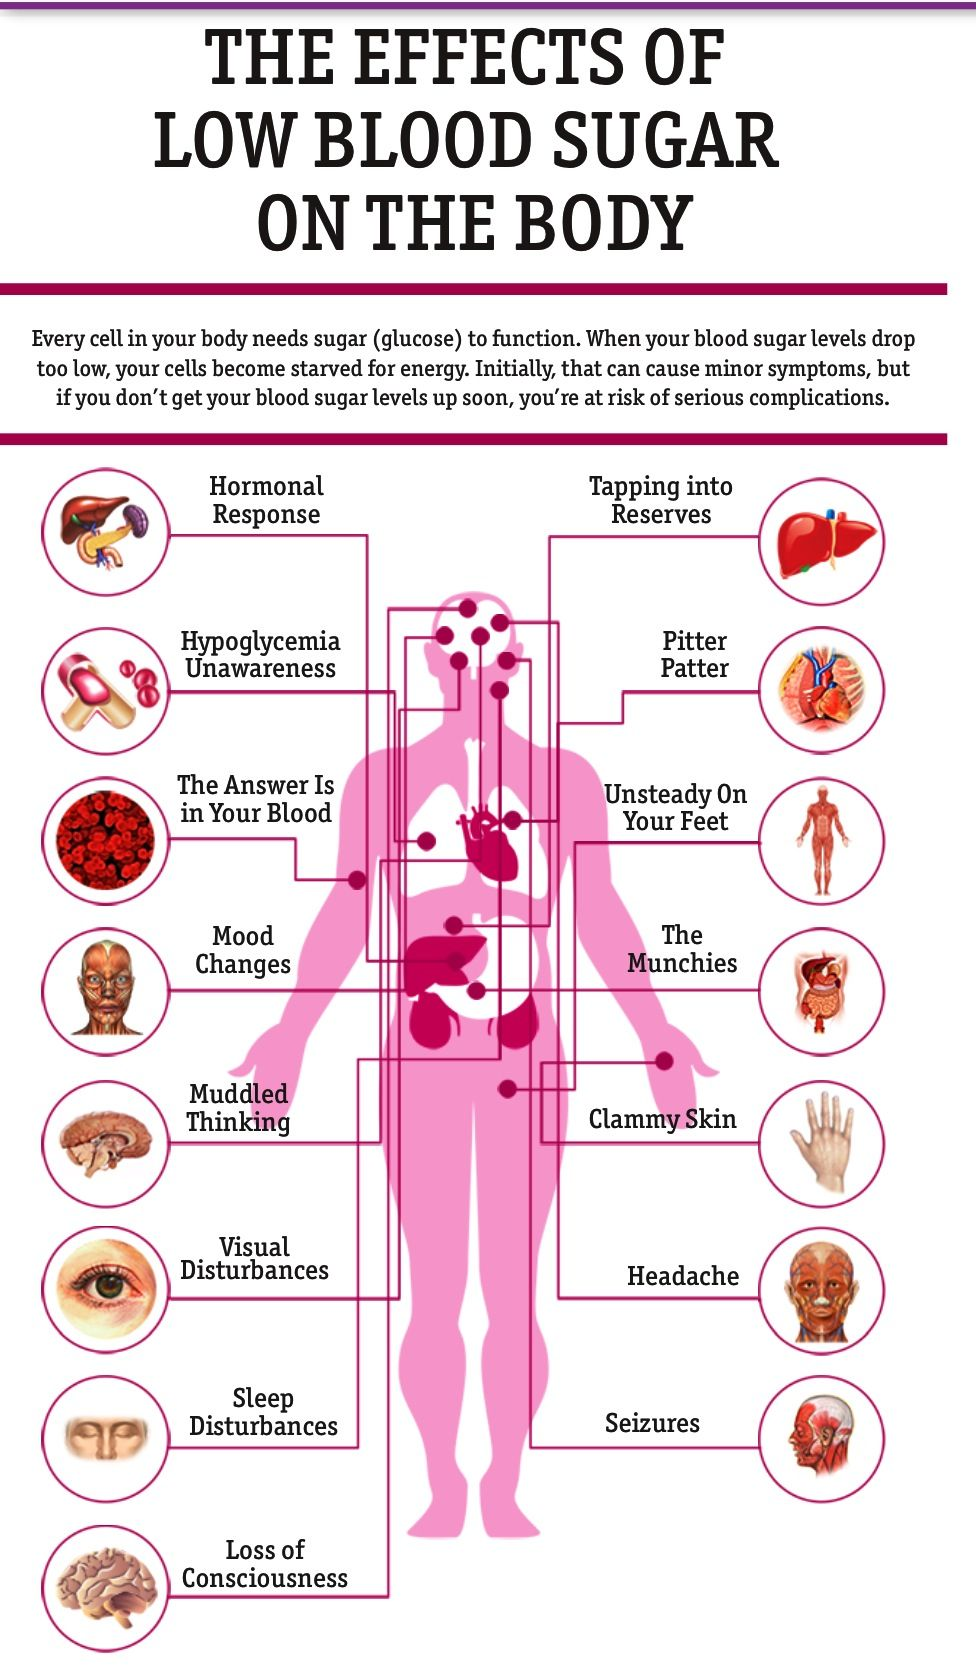 Low blood sugar: causes, effects 69